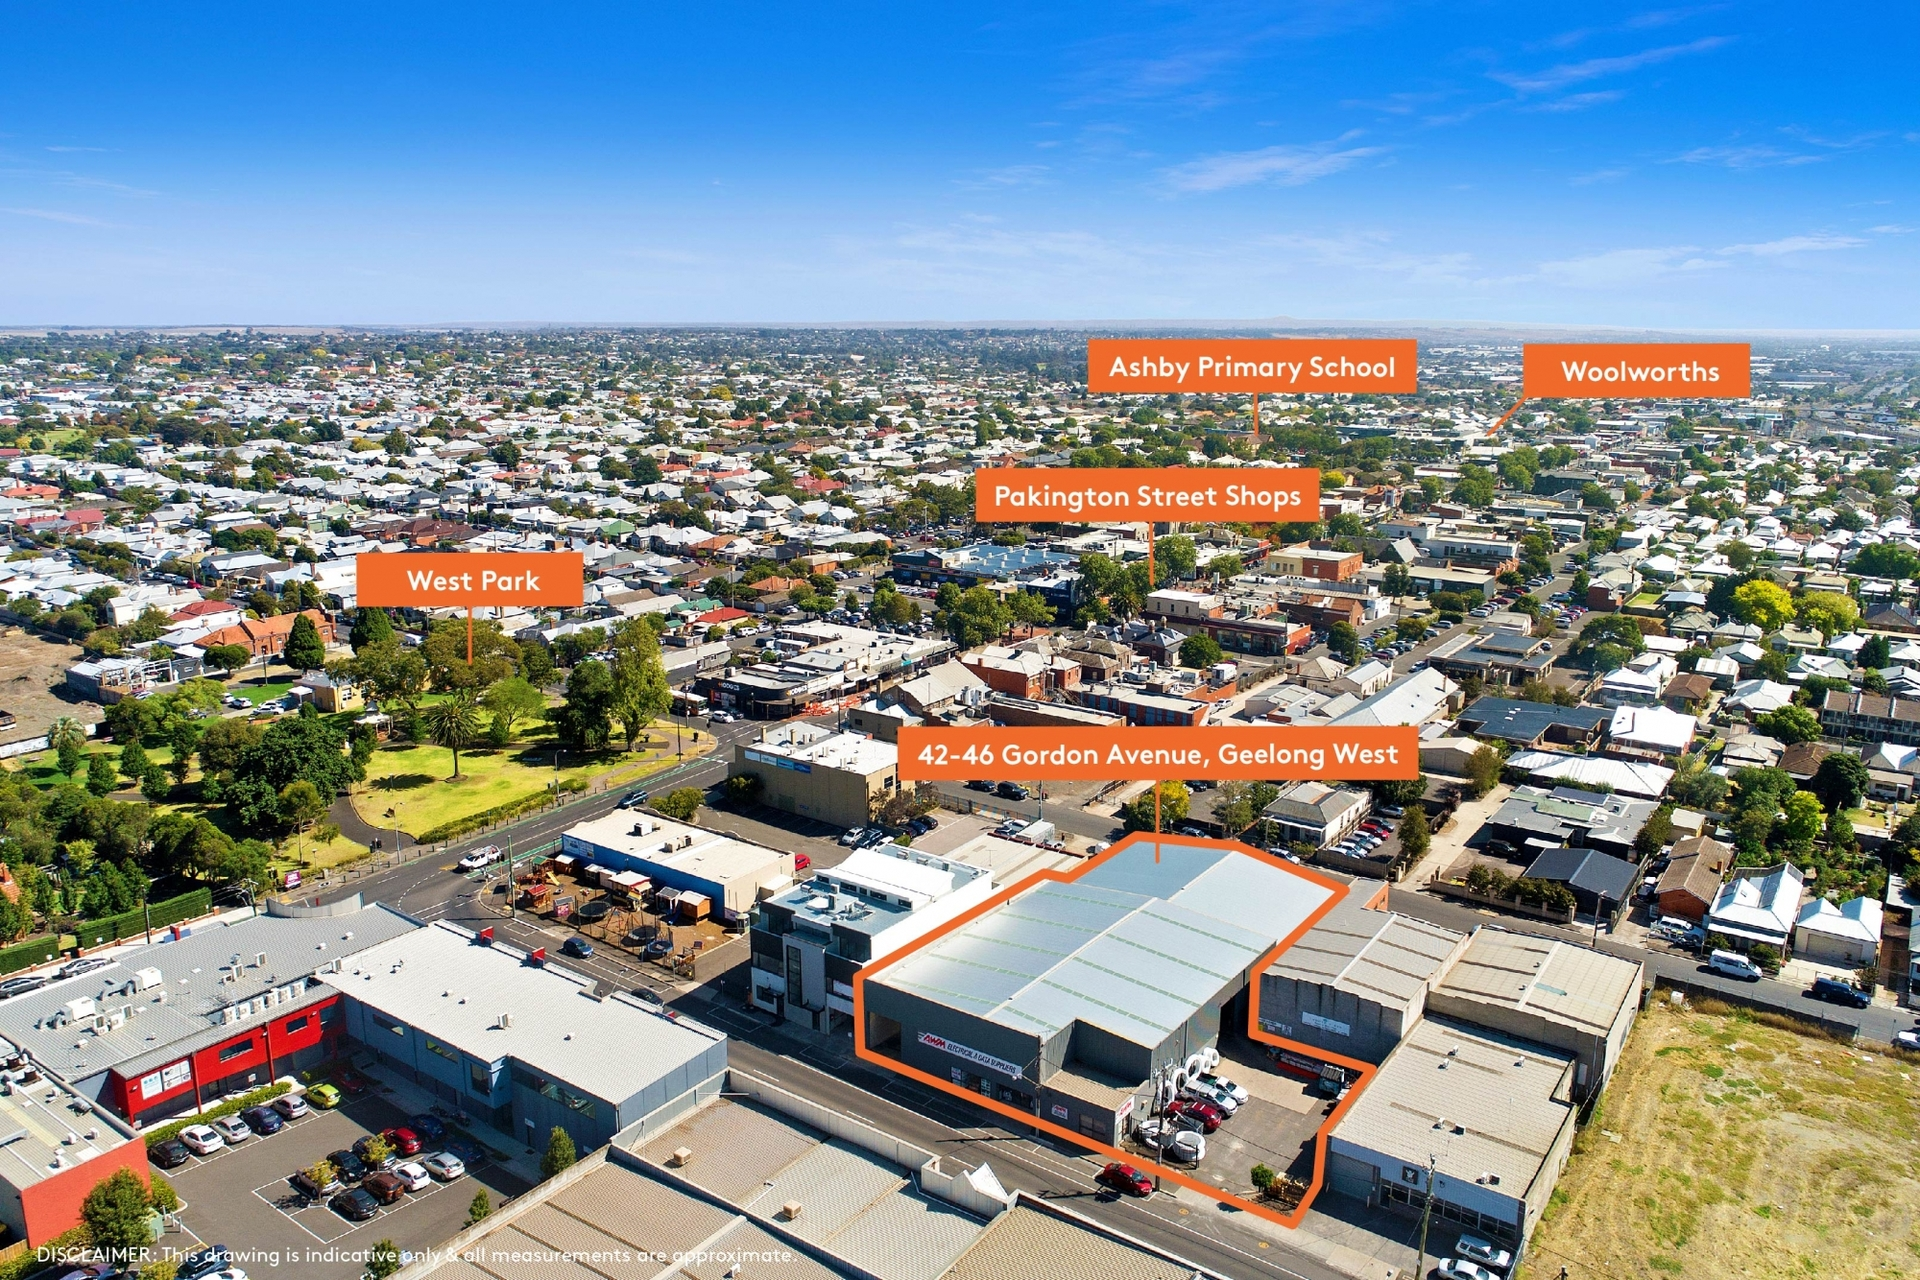 42-46 Gordon Avenue Geelong West